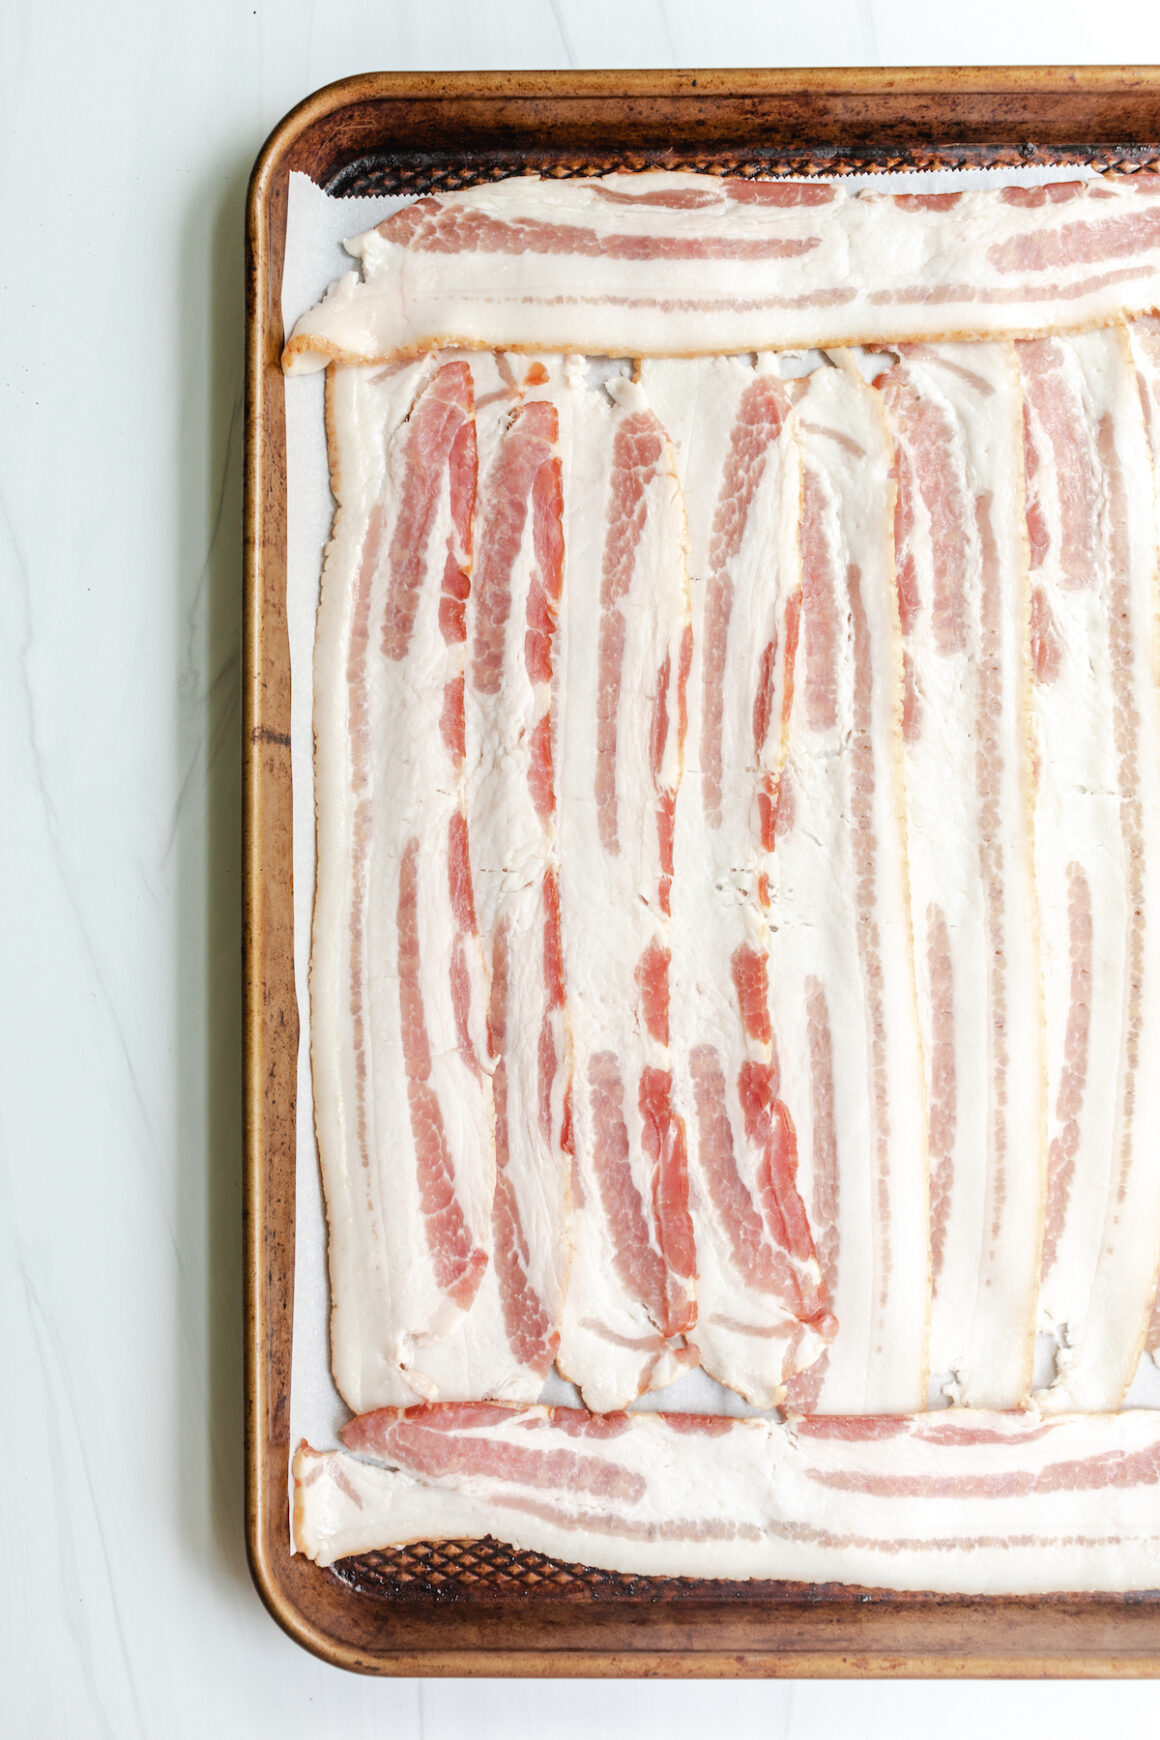 Thick cut bacon on a baking sheet with parchment paper